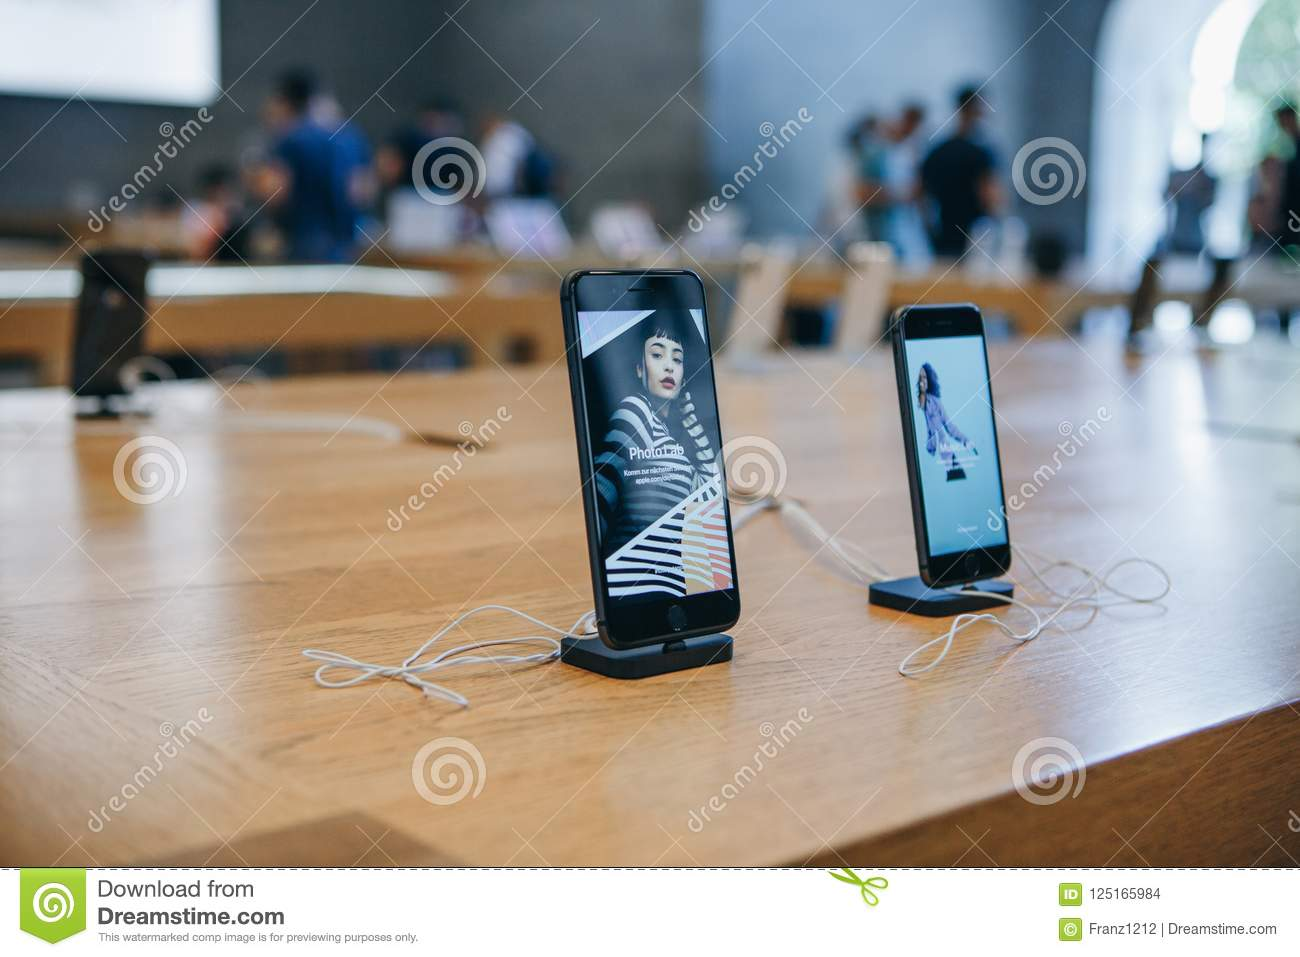 The IPhone 8 And The IPhone SE Are Exhibited And Sold In The